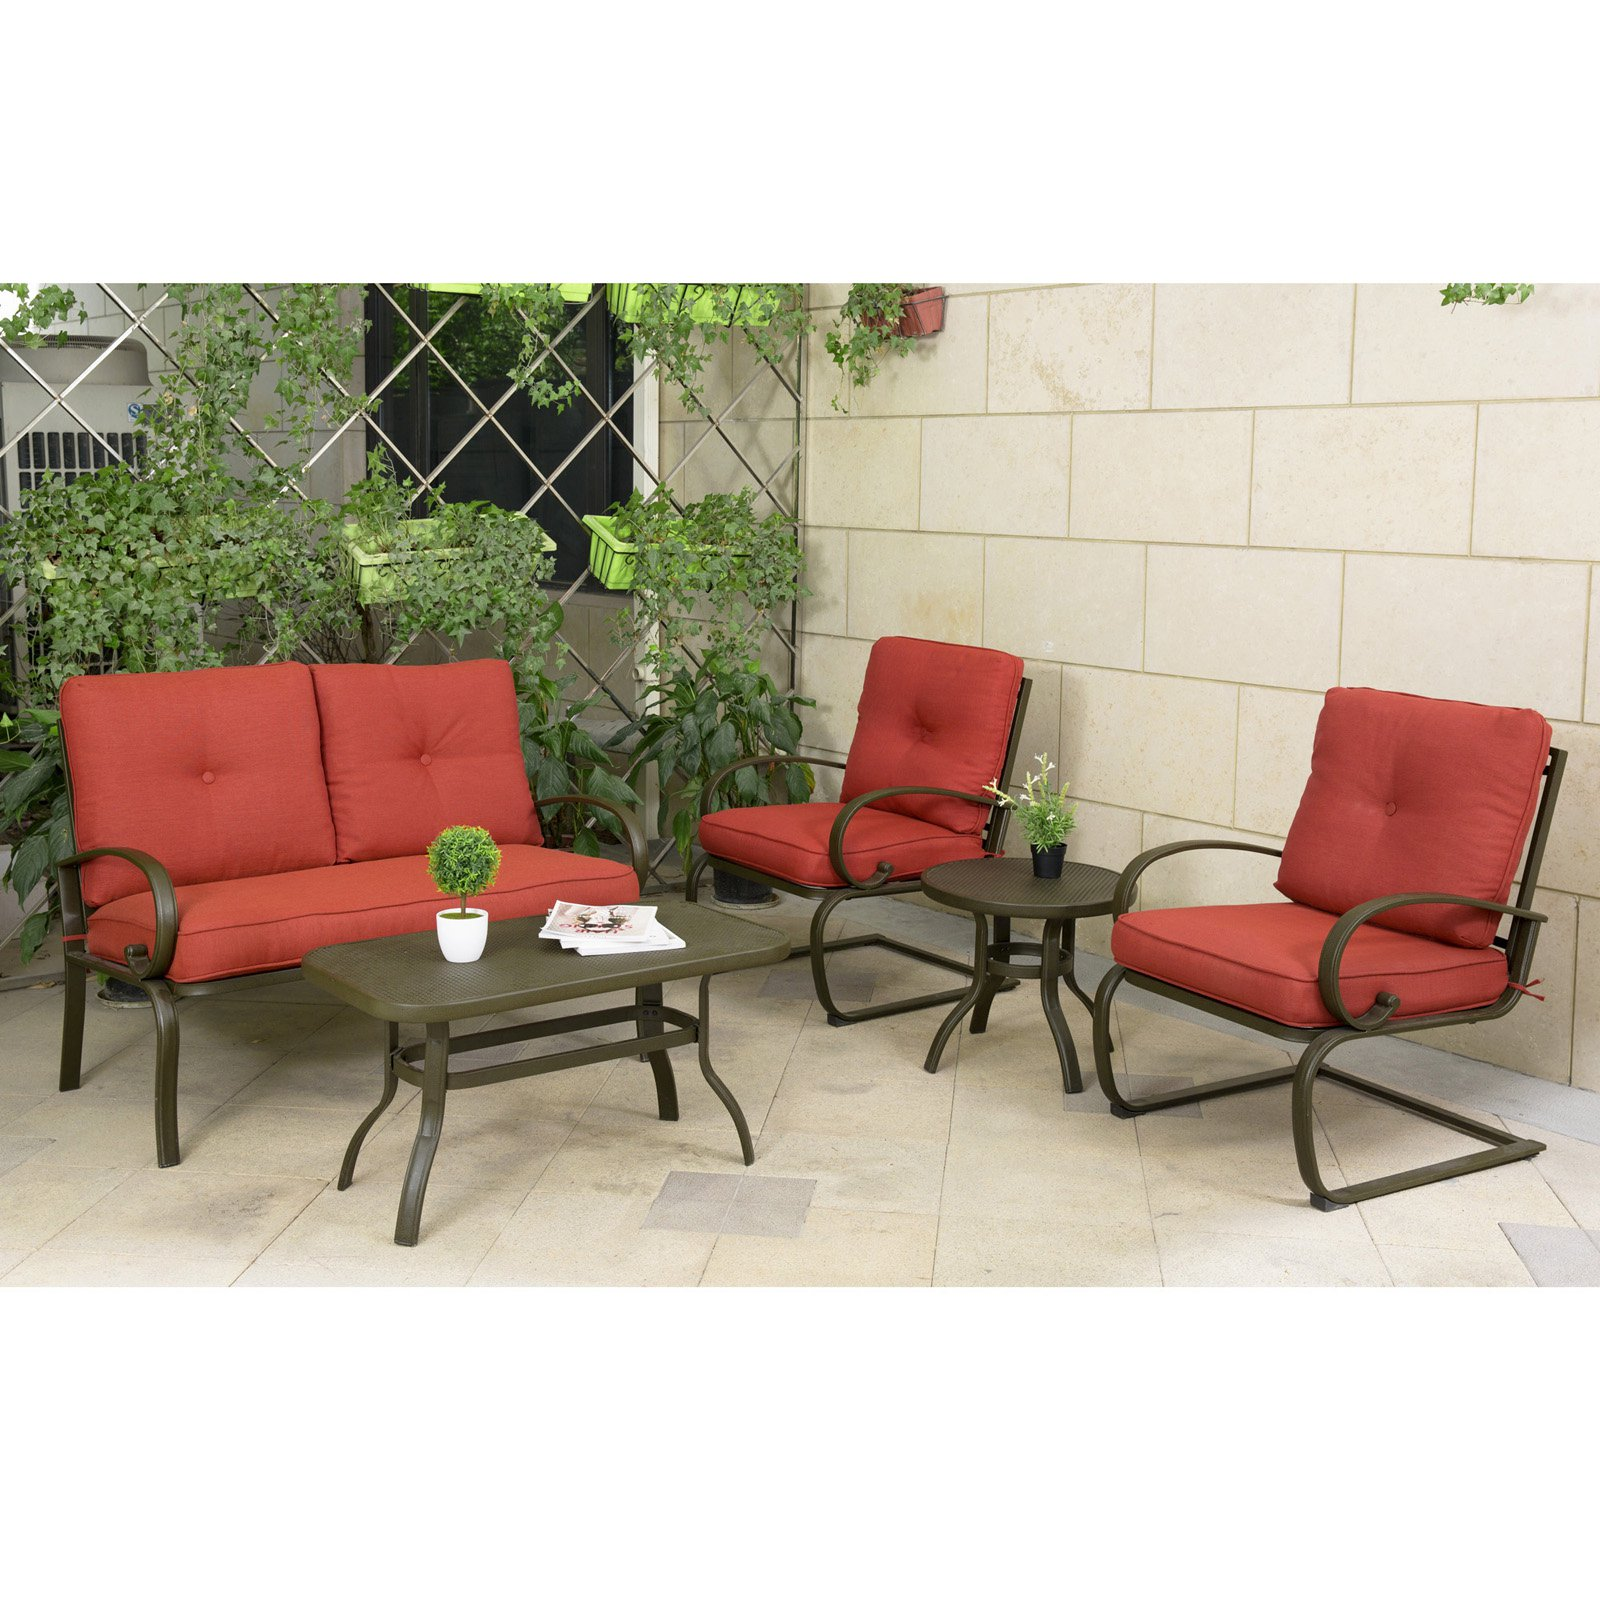 Cloud Mountain Wrought Iron 5 Piece Patio Conversation Set